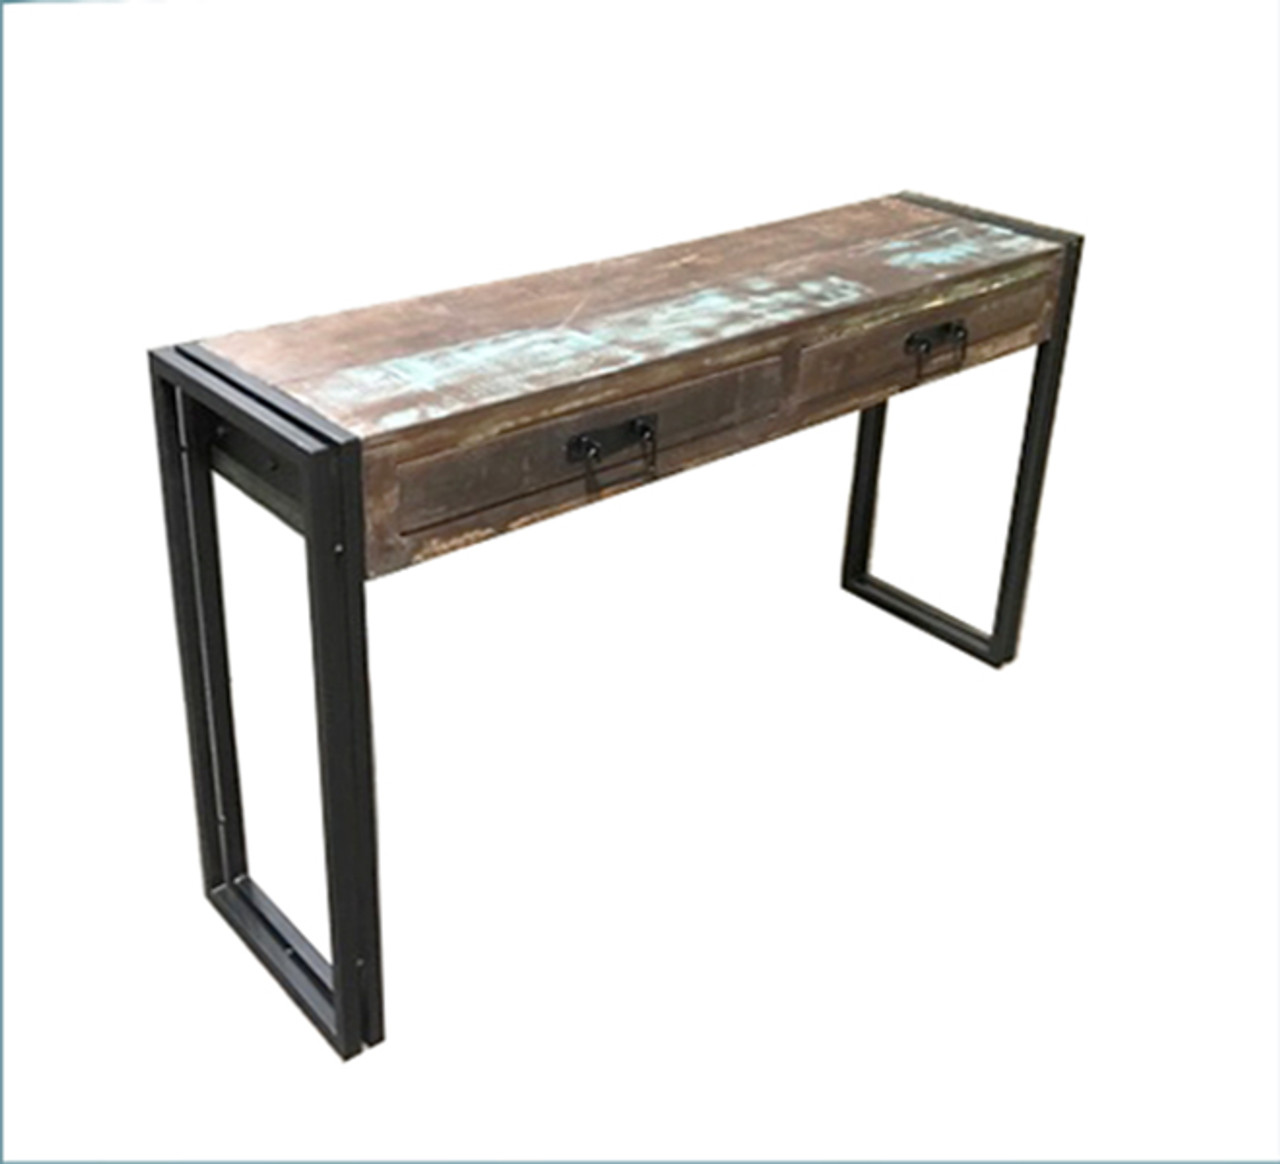 Timbergirl old reclaimed wood console table with metal legs timbergirl timbergirl old reclaimed wood console table with metal legs watchthetrailerfo